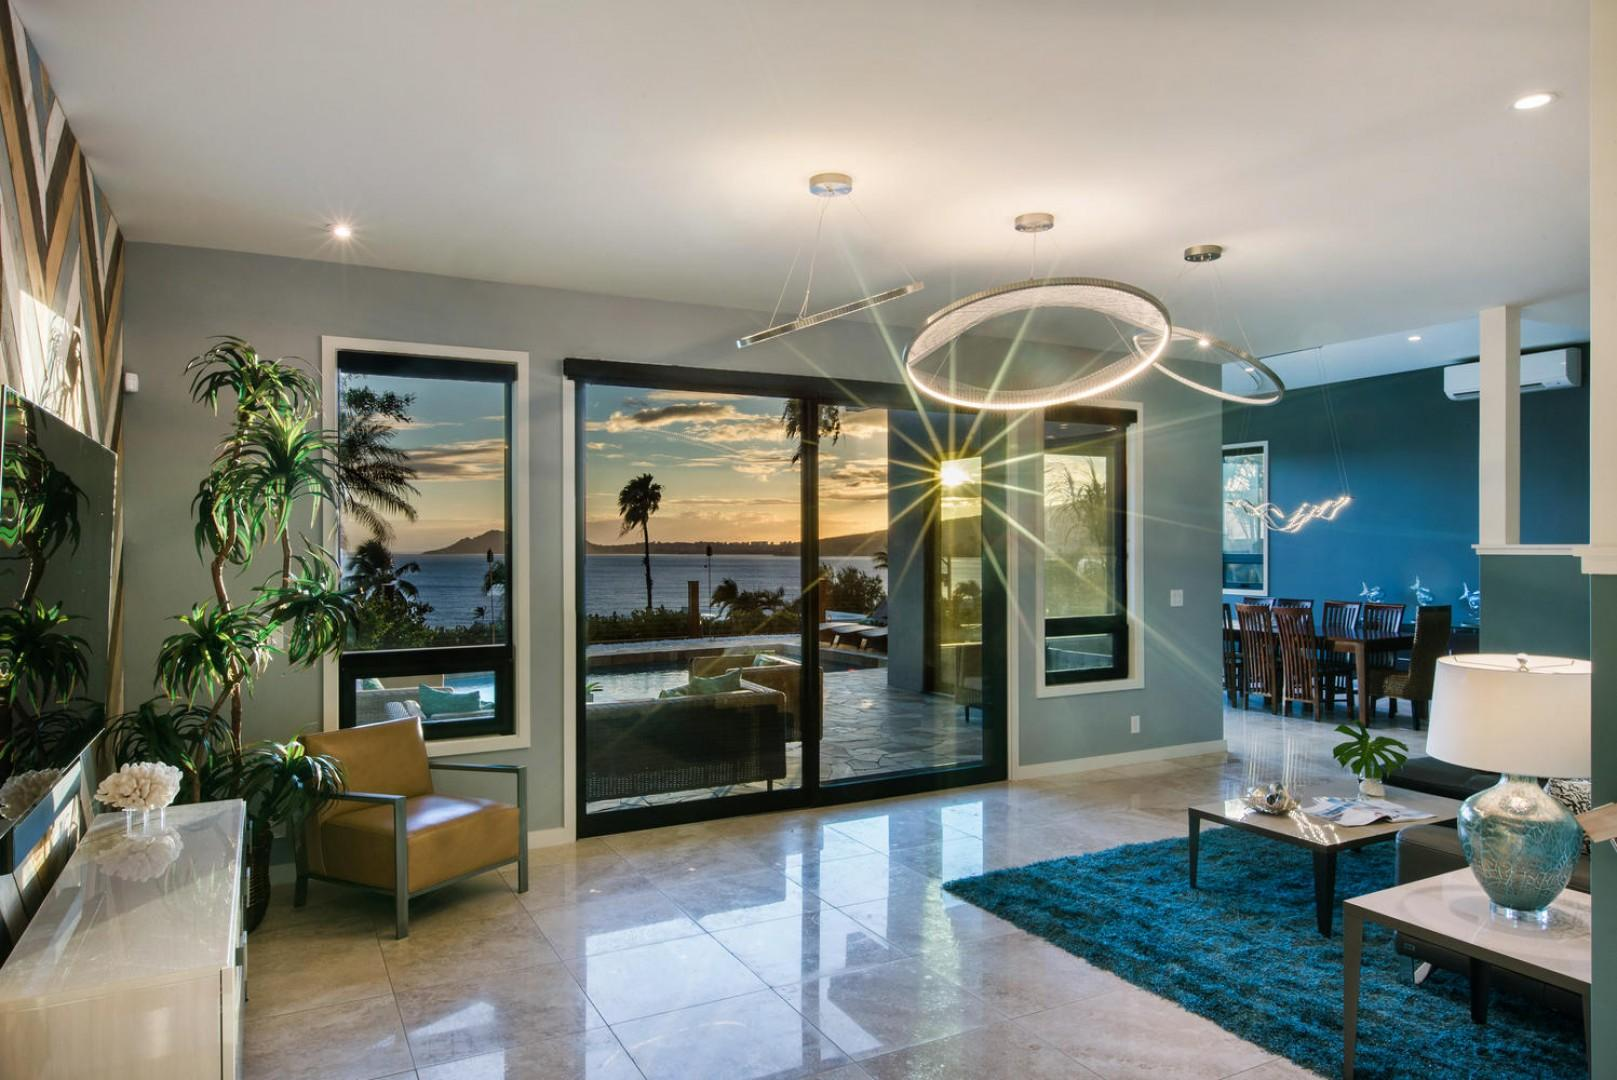 More breathtaking views form the front entry!